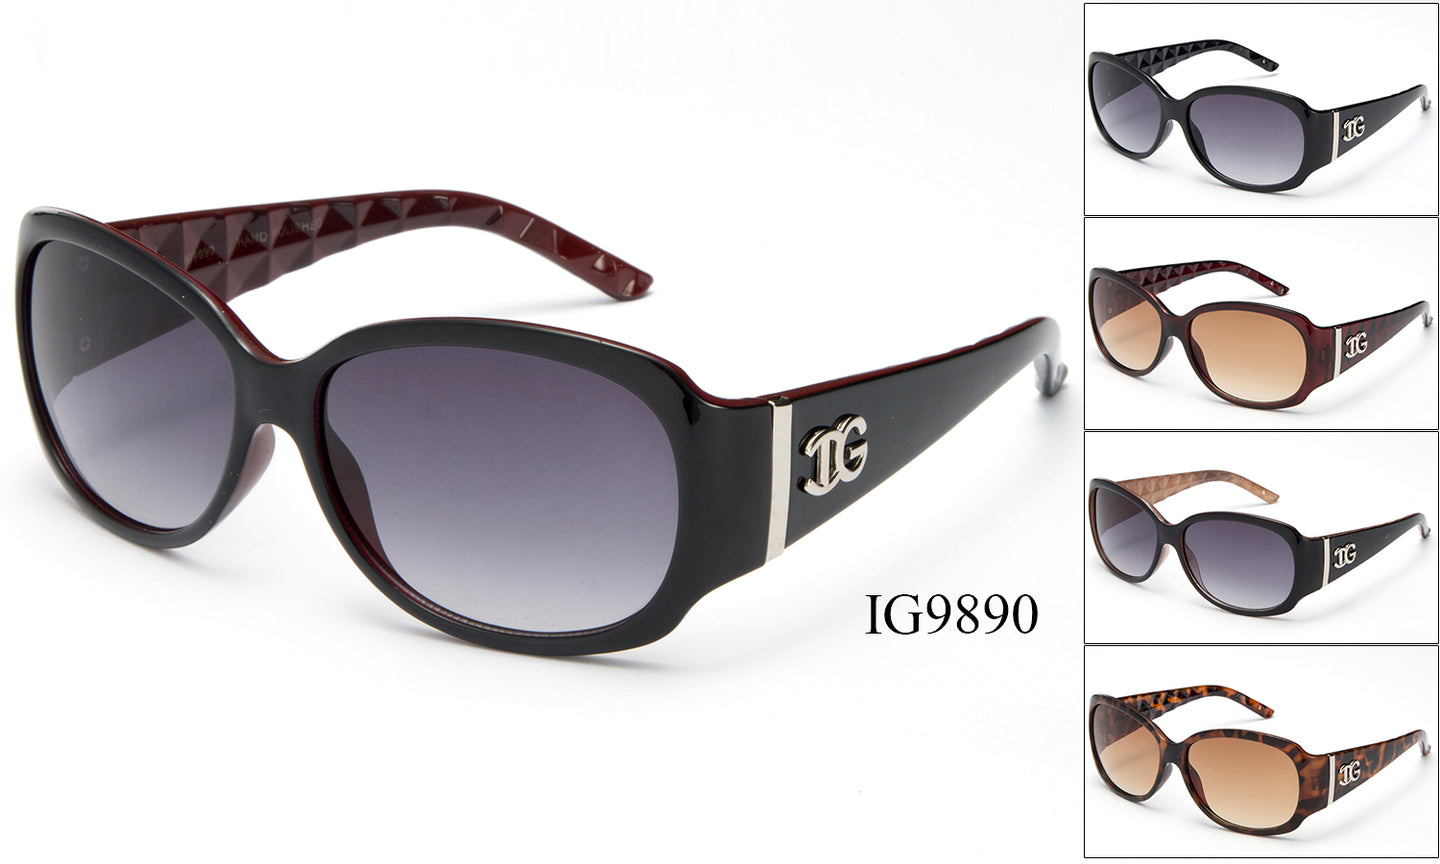 Womens Wholesale Round Lens Fashionable Sunglasses 1 Dozen IG9890 - BuyWholesaleSunglasses.com